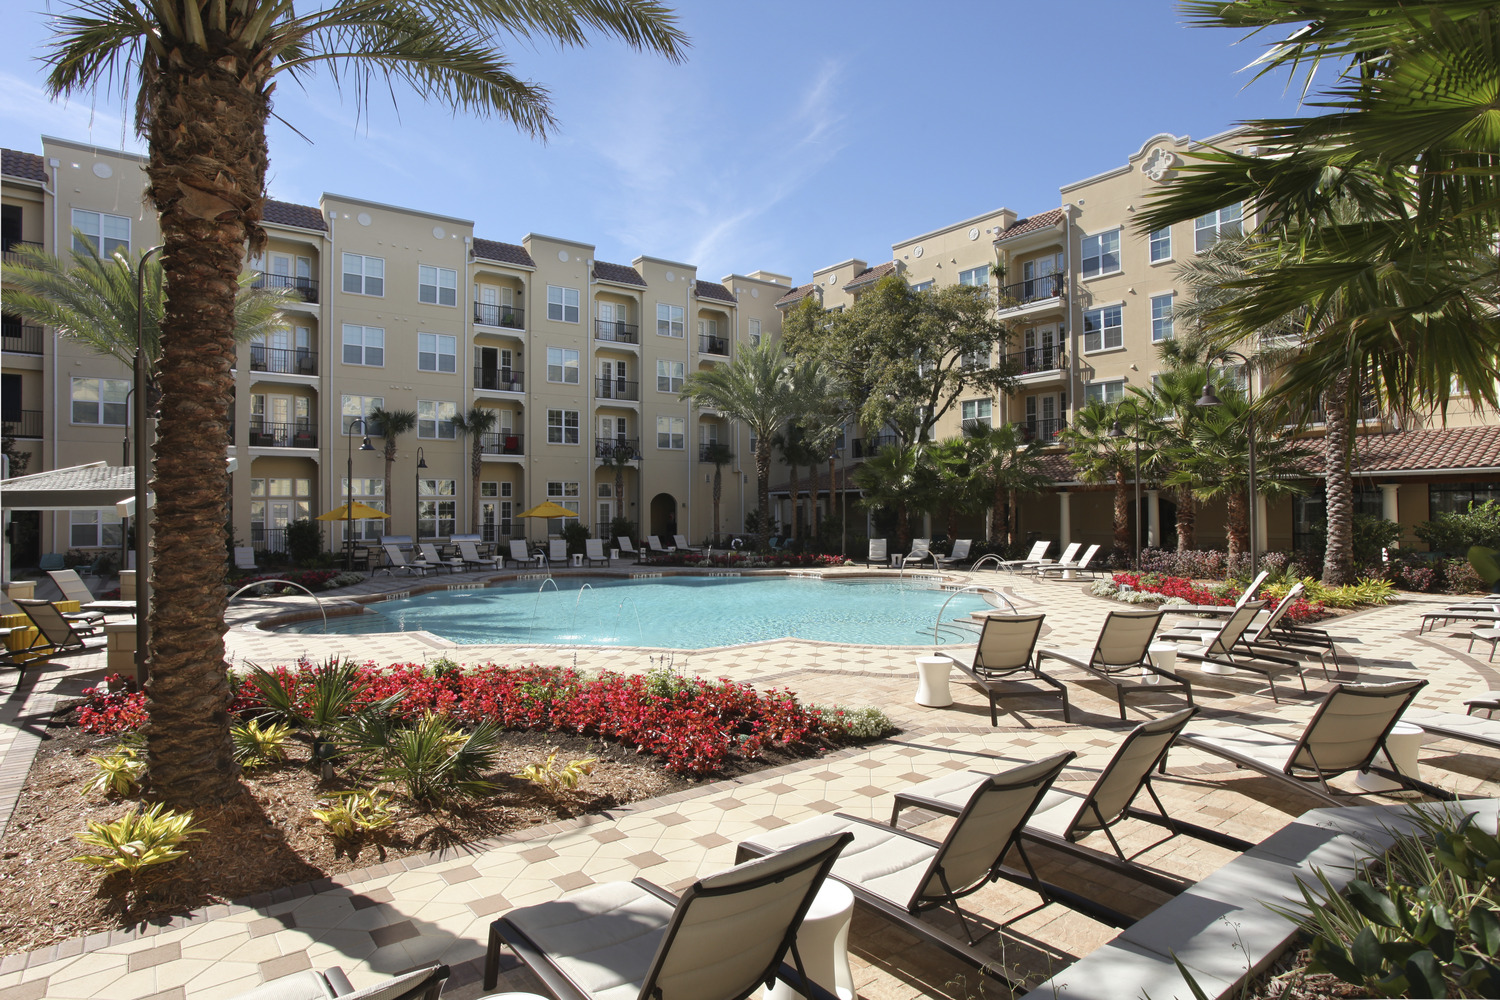 CBG builds Post Soho Square, a 231-Unit Mixed-Use Luxury Apartment Community in Tampa, FL - Image #1